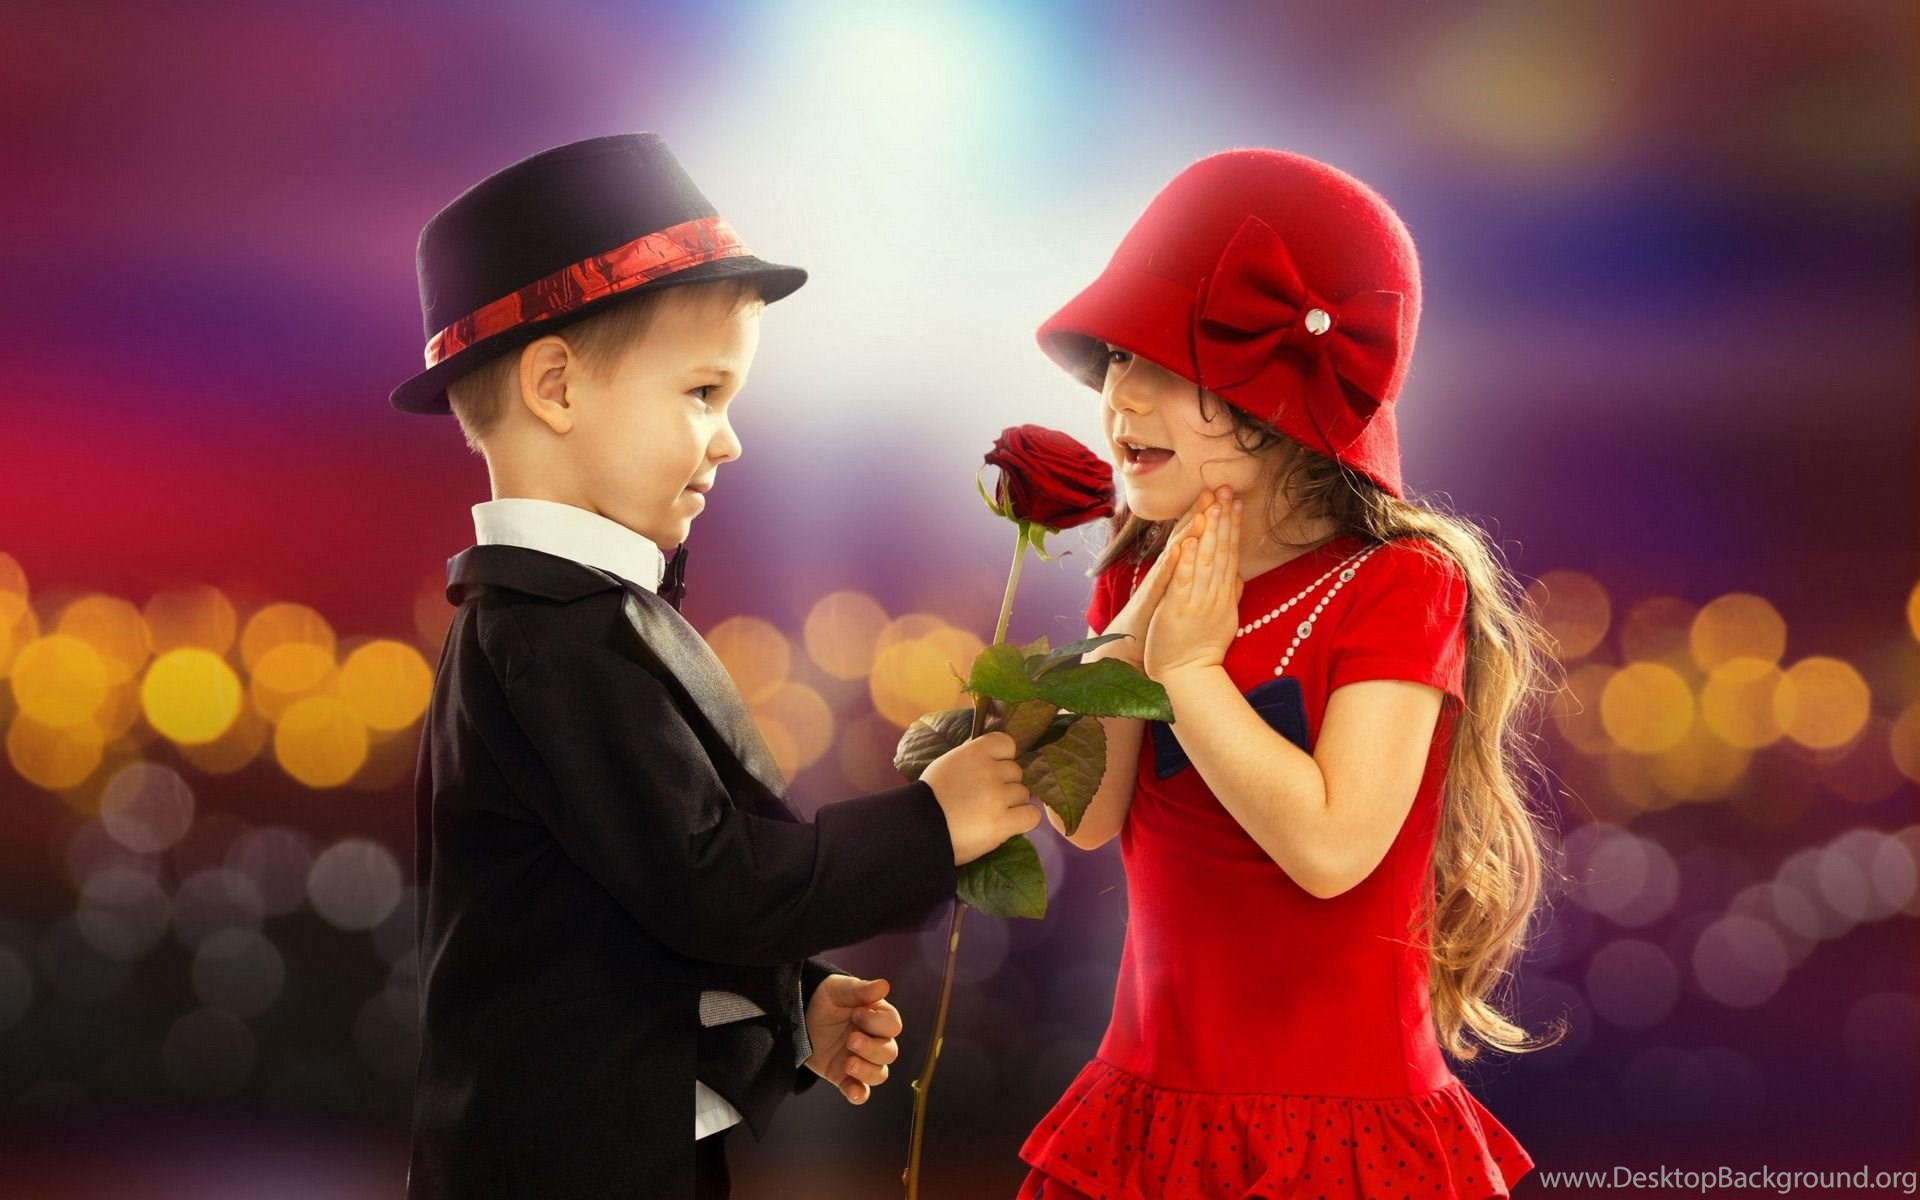 girl and boy love hd wallpapers 1920 x 1200 desktop background